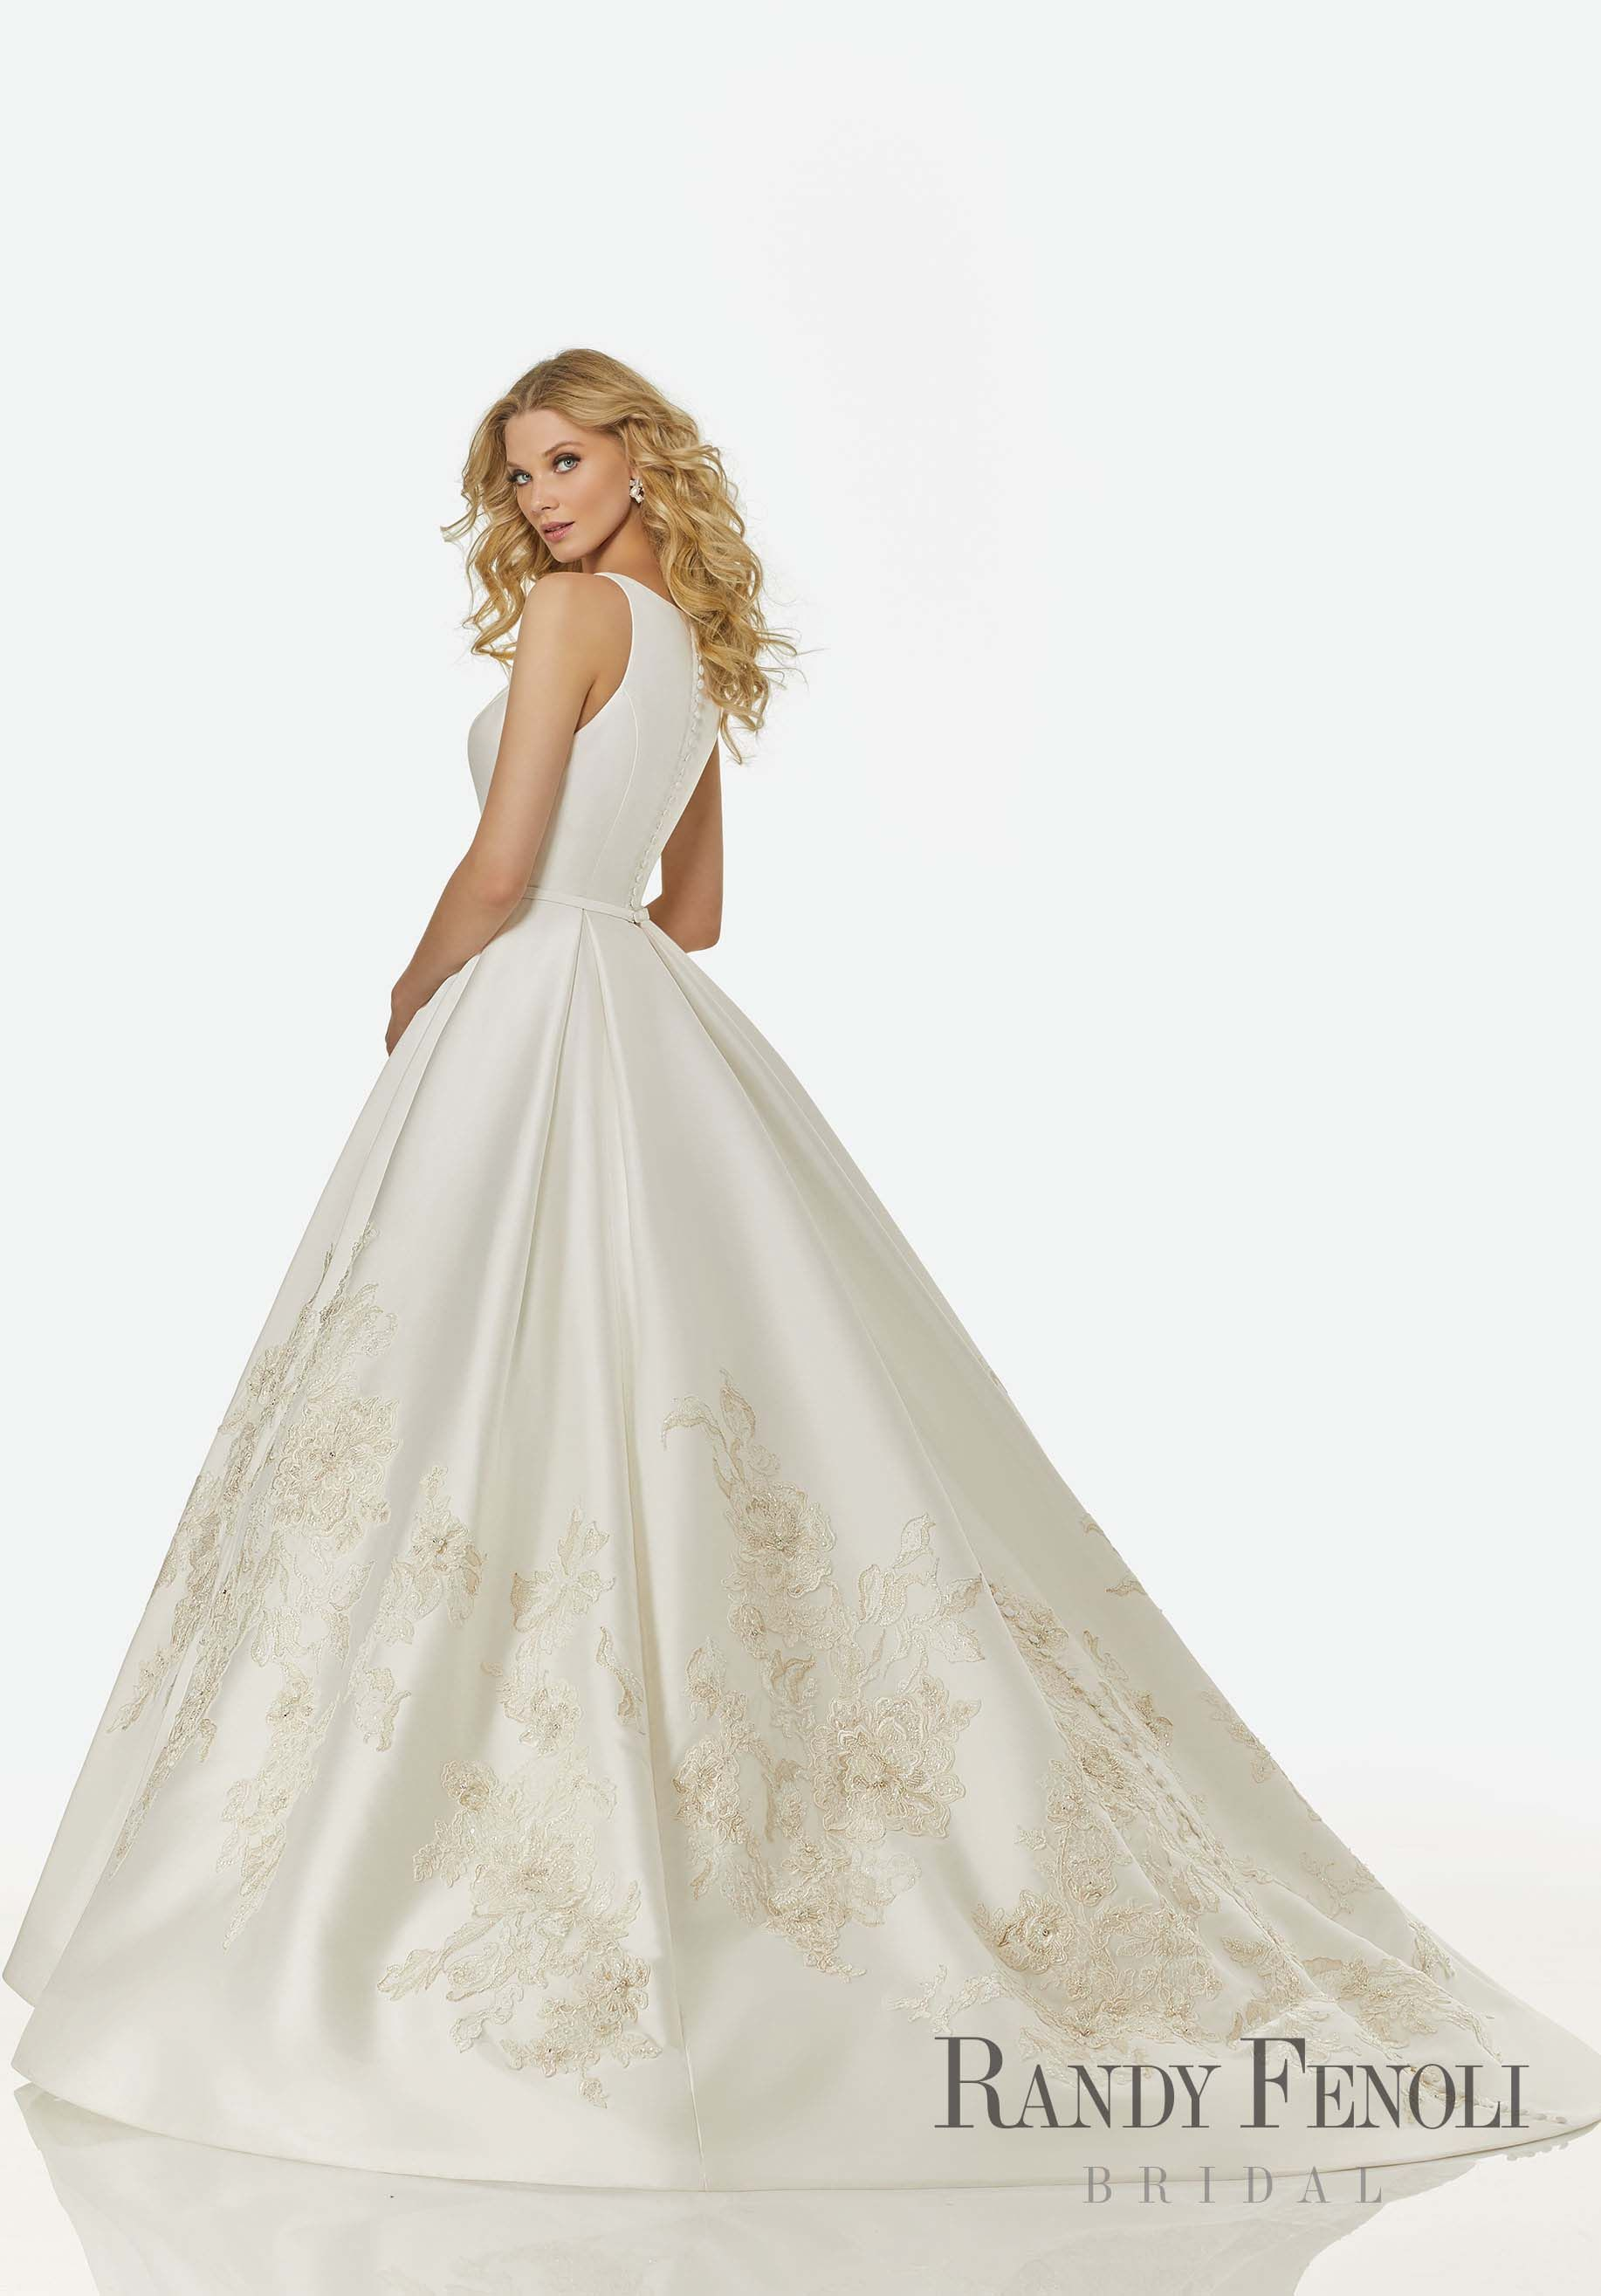 34d0672cc950f Randy Fenoli Bridal, Grace Wedding Dress | Style 3404. Beaded Floral  Appliqués on a Sleeveless Mikado Ball Gown with Modified and Modest Sabrina  Neckline ...